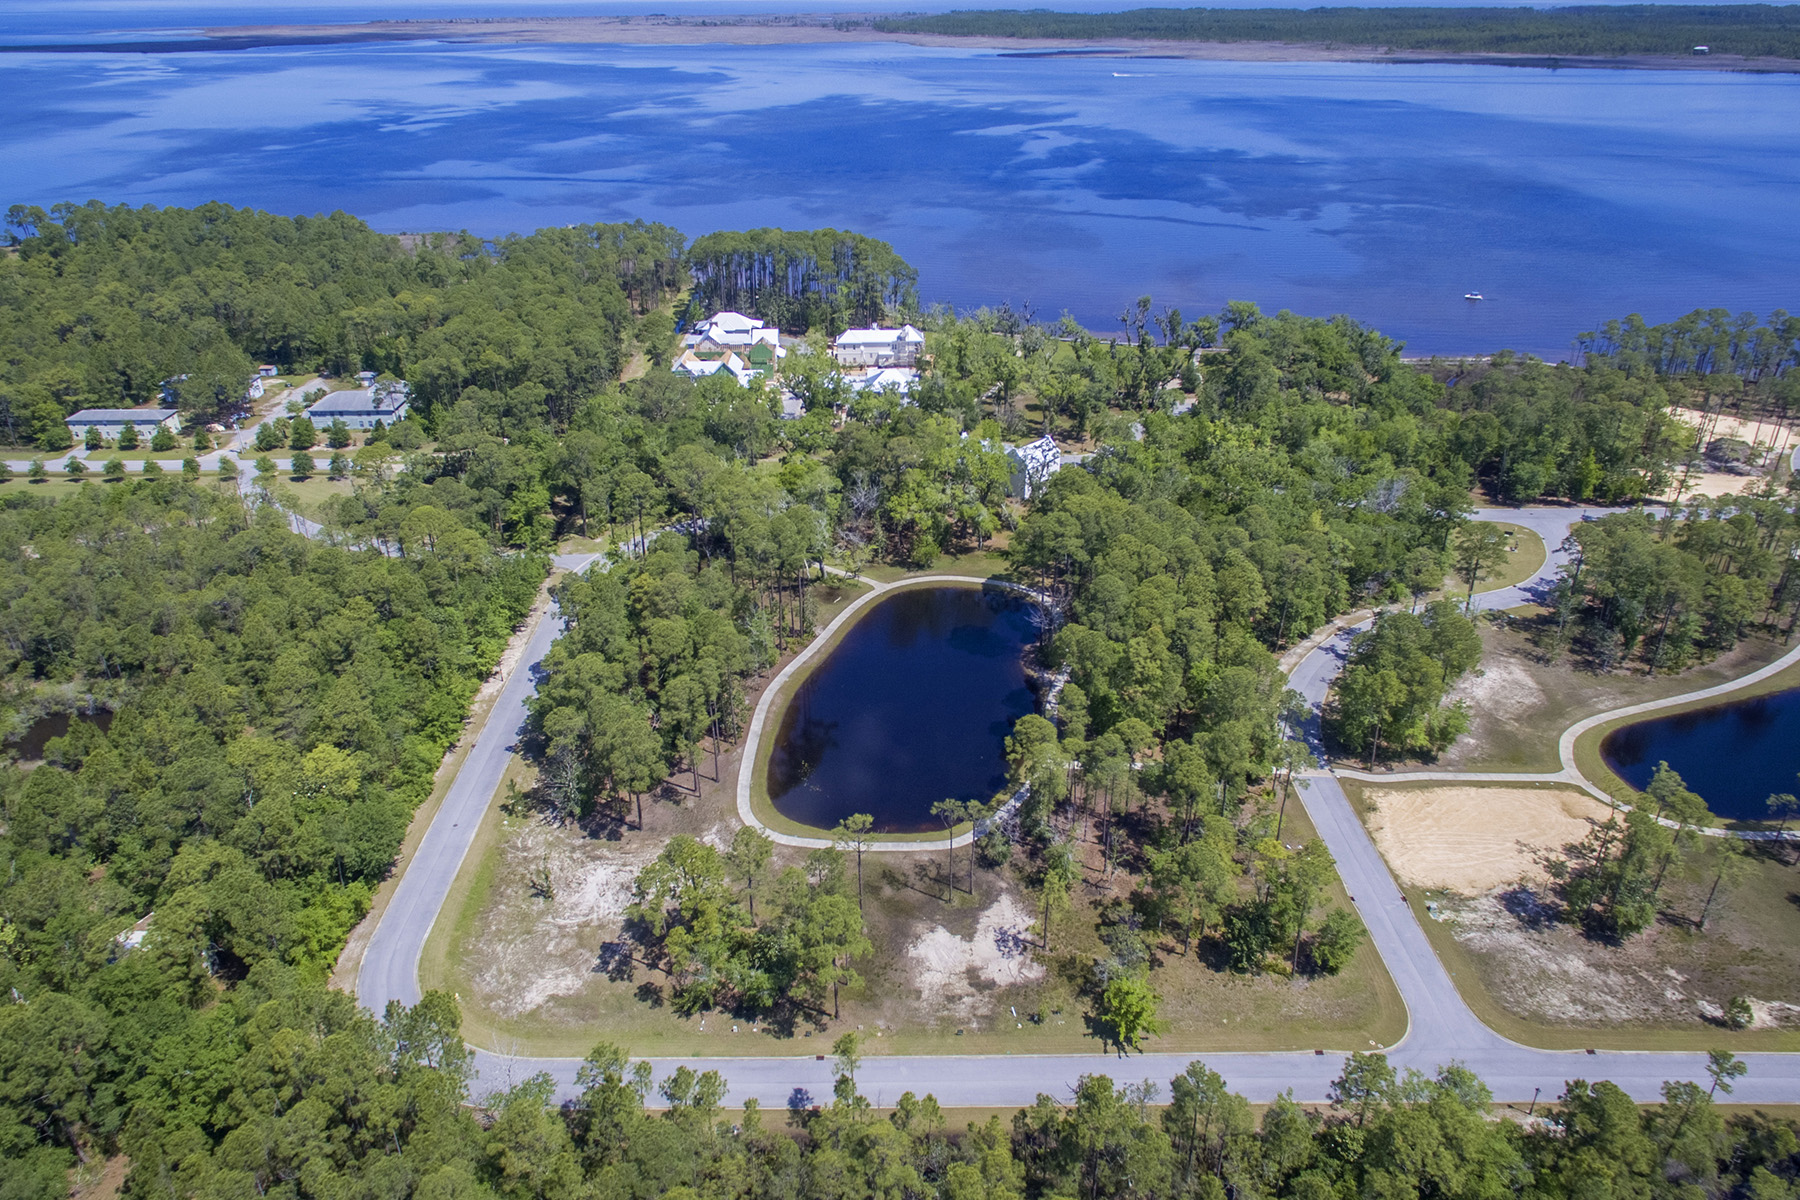 أراضي للـ Sale في BUILD YOUR DREAM HOME IN CHURCHILL OAKS Lot 38 Tyler, Santa Rosa Beach, Florida, 32459 United States